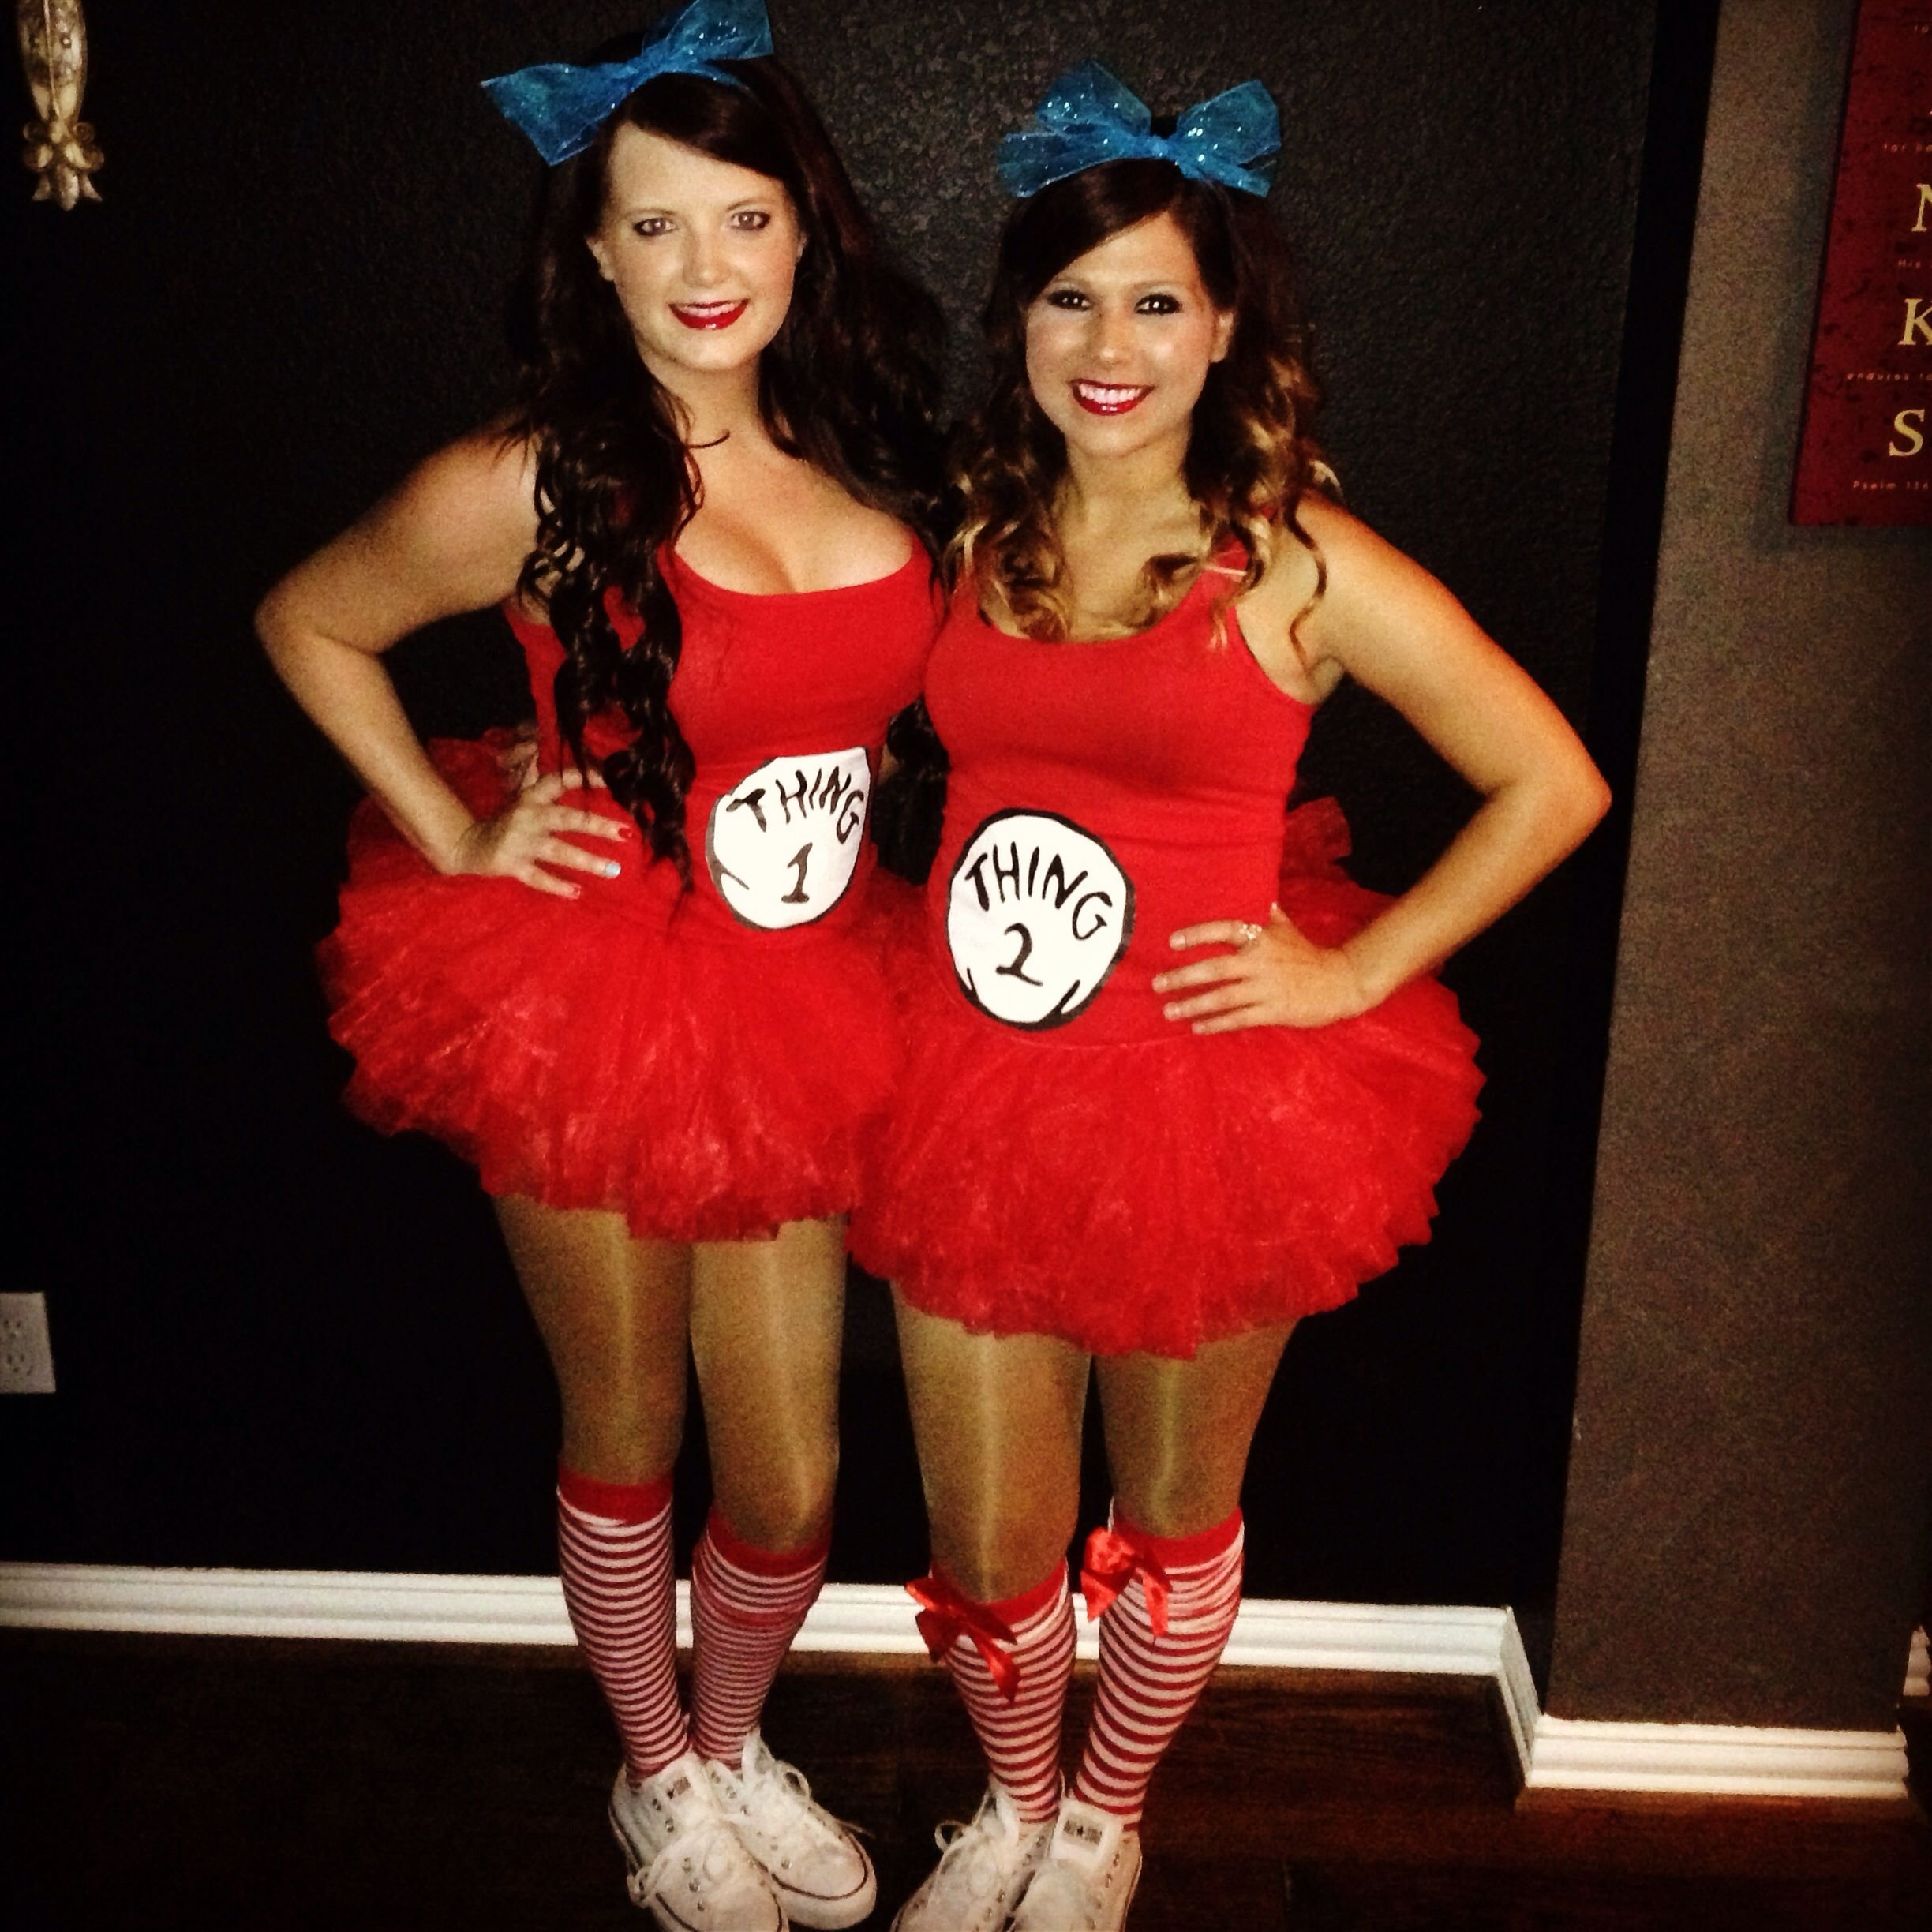 10 Elegant Costume Ideas For Two People thing 1 and thing 2 costumes cute fashion pinterest costumes 4 2021